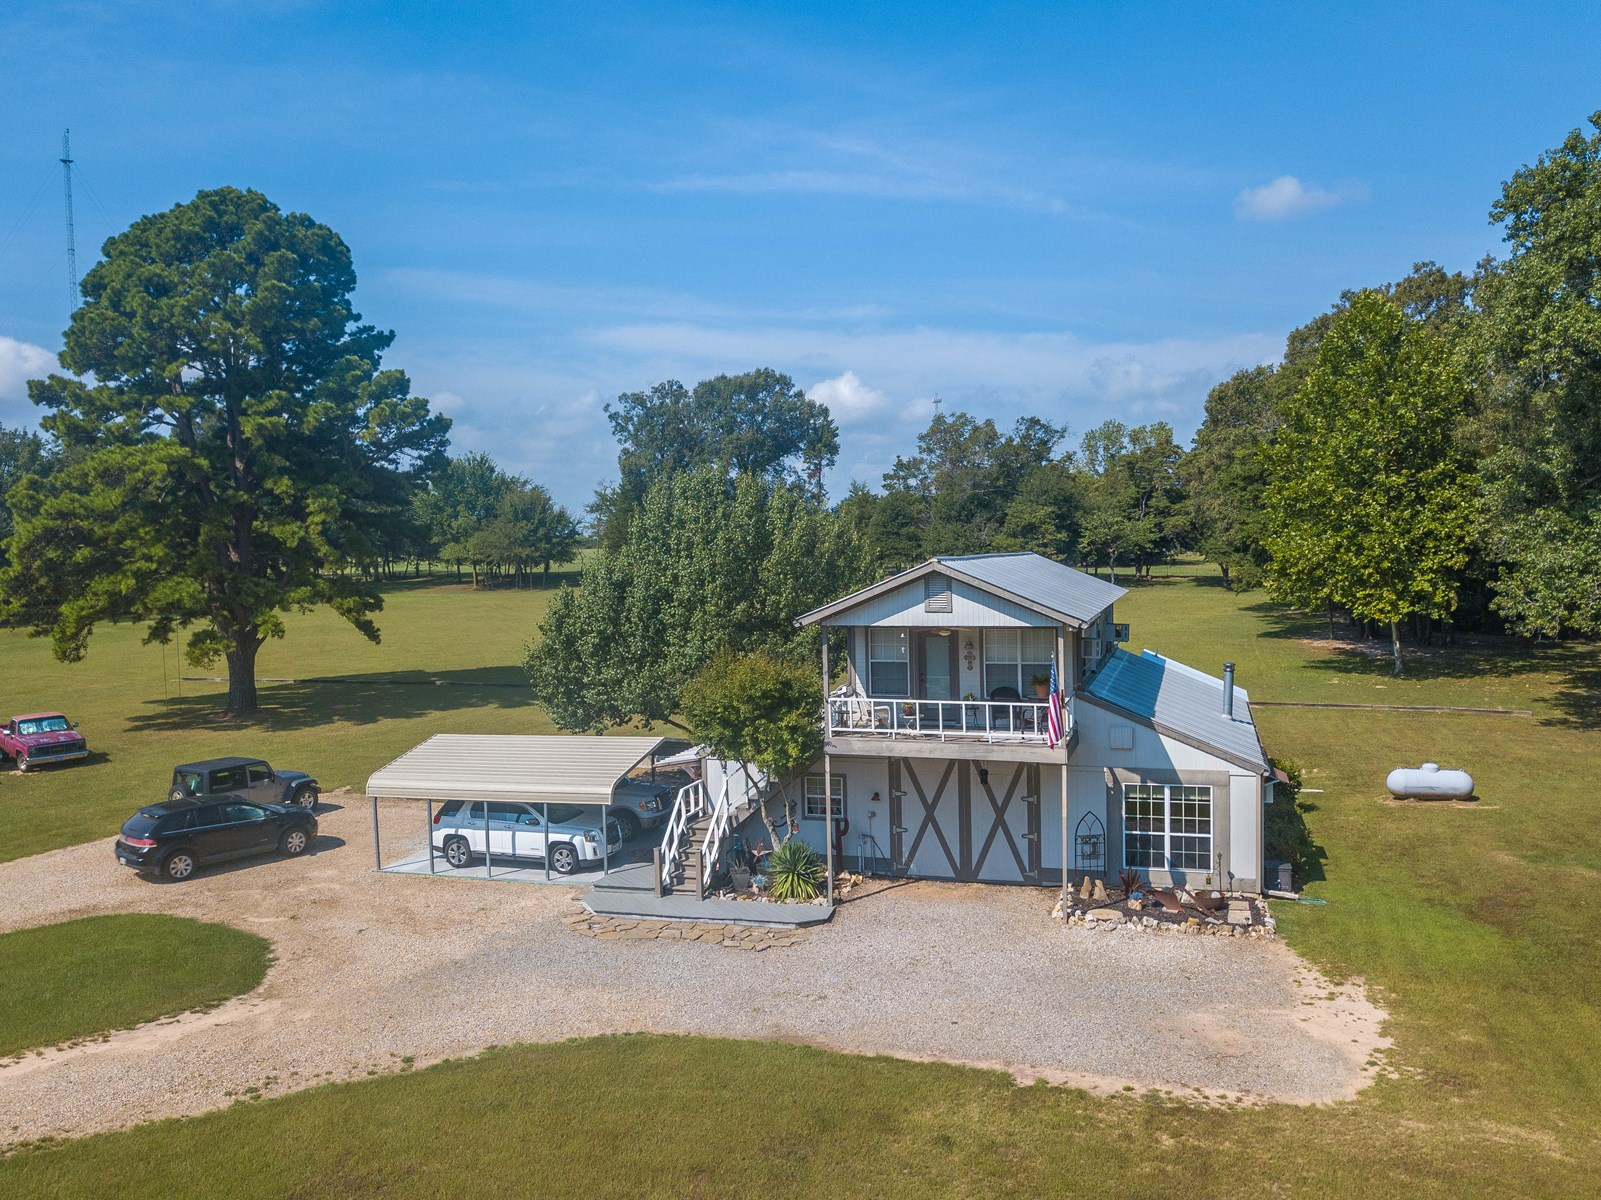 EAST TEXAS COUNTRY HOME 9 ACRES + POND FRANKLIN COUNTY TX